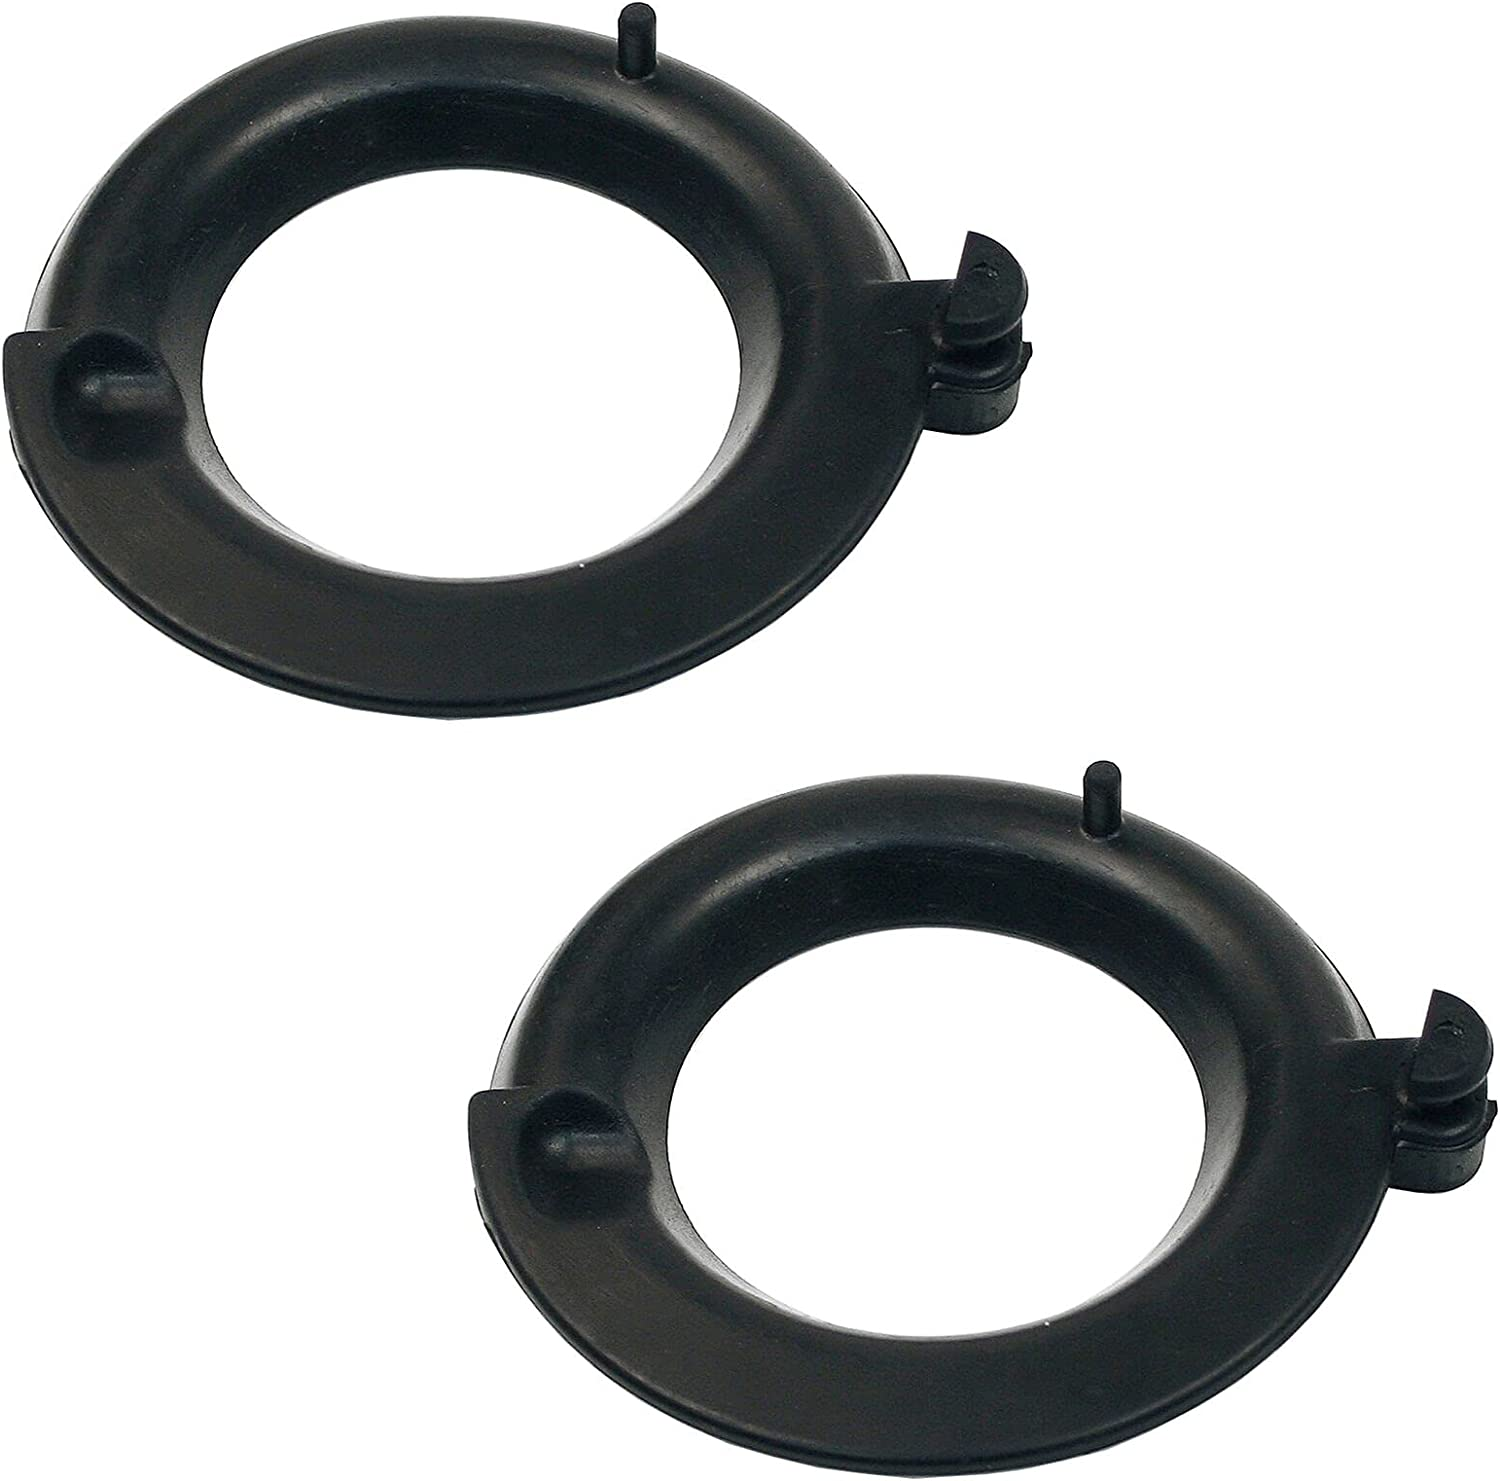 Replacement Front Lower Suspension Seat Coil Spring famous Popular popular Set